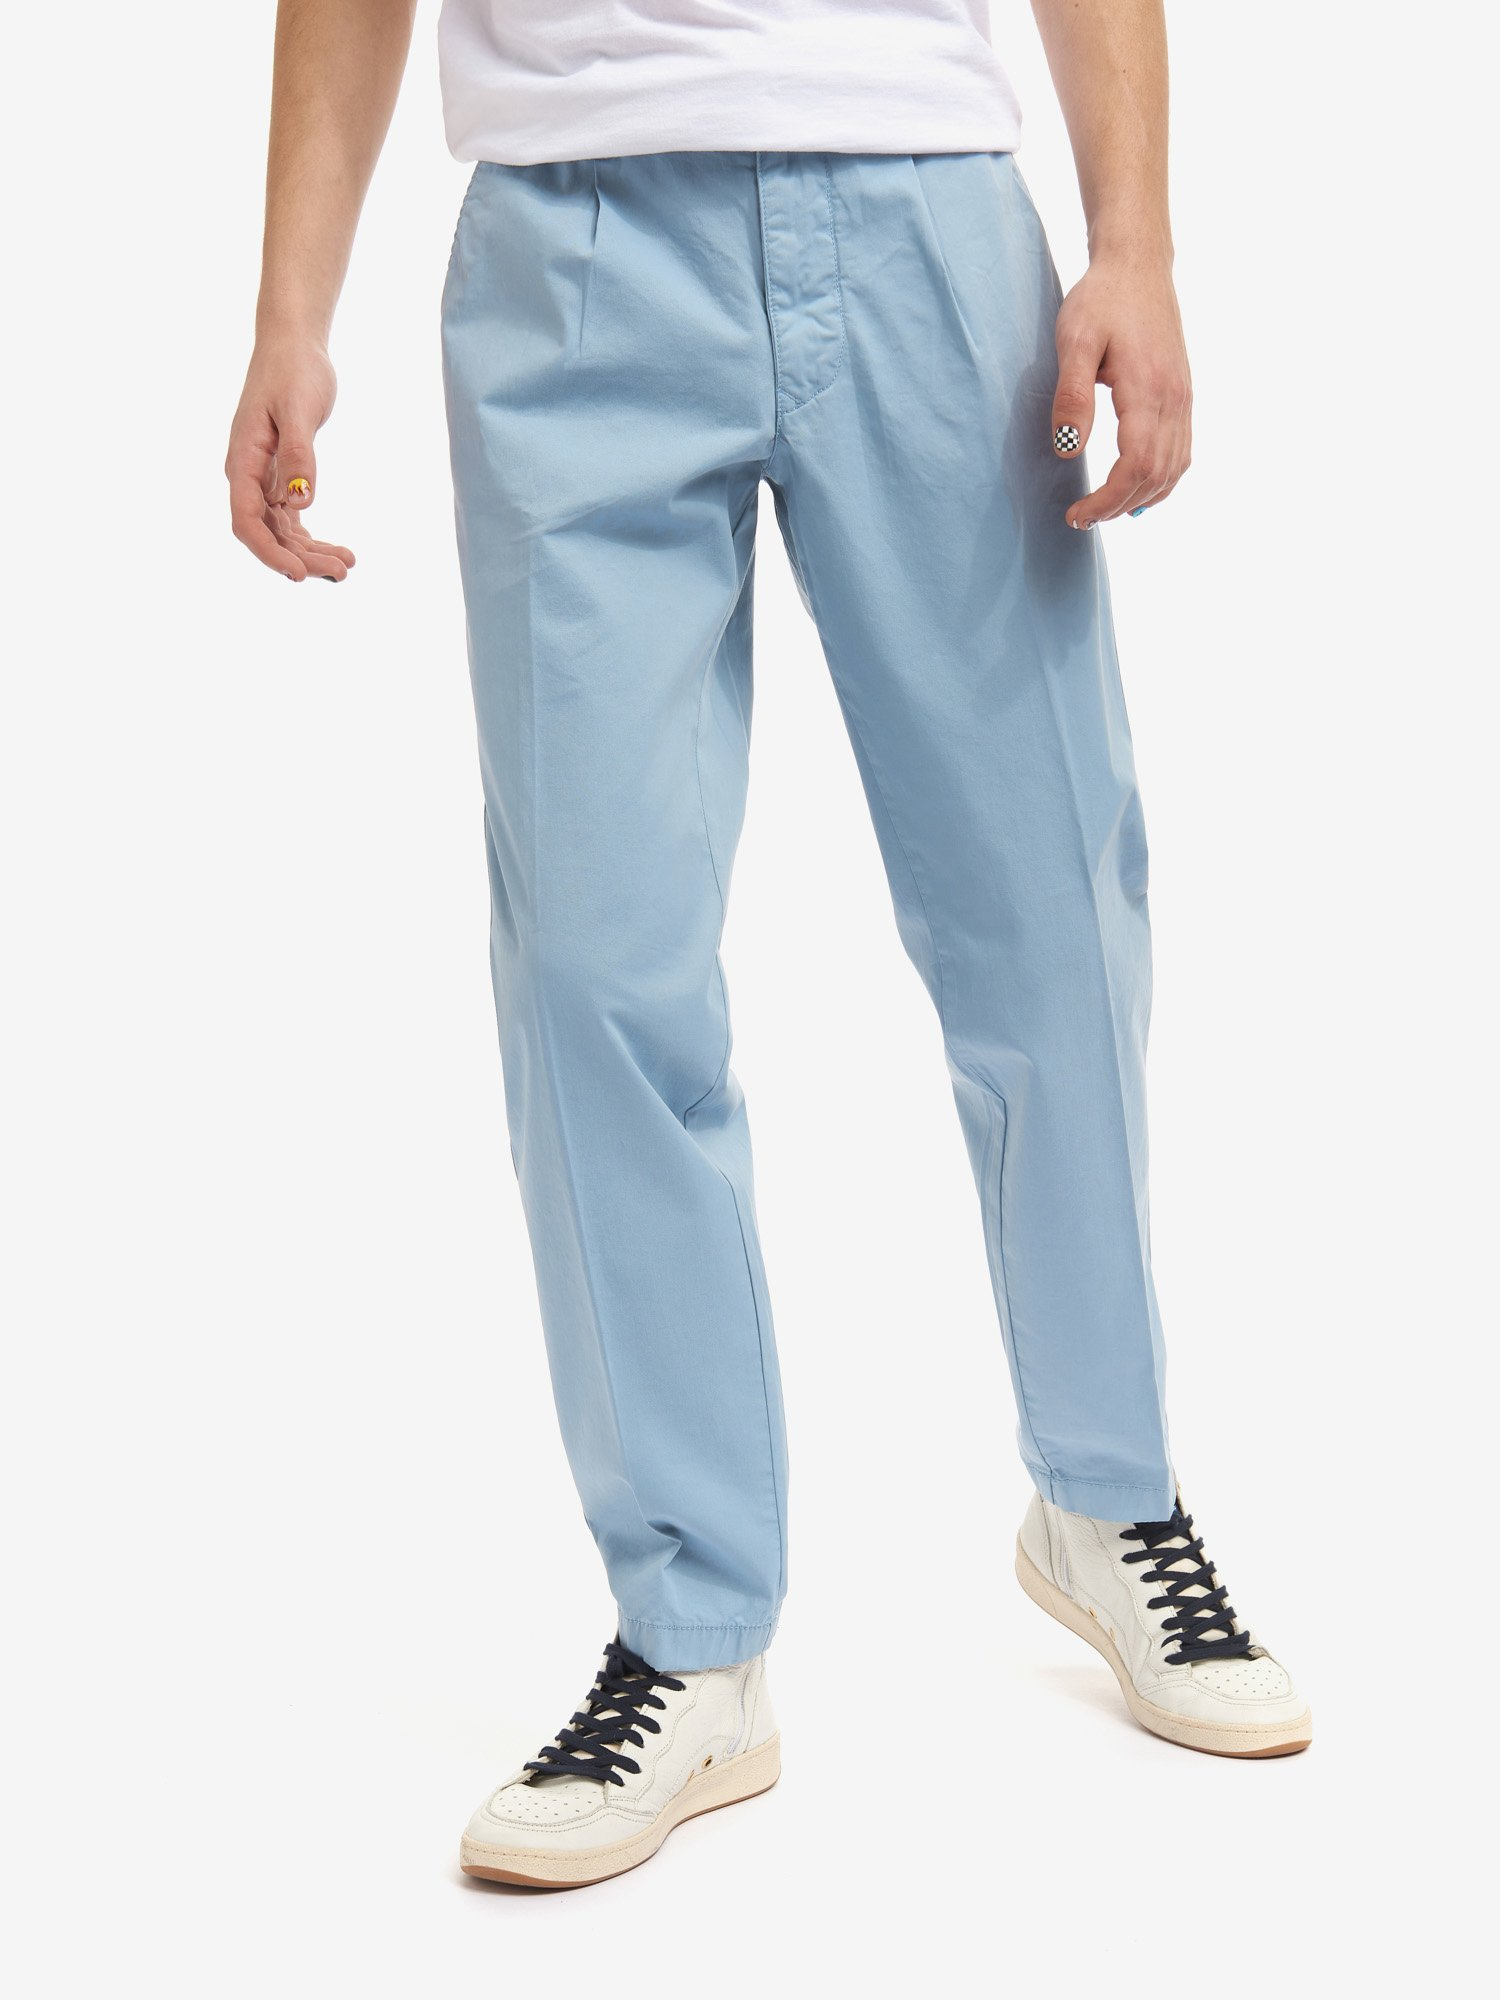 TROUSERS WITH PLEATS - Blauer